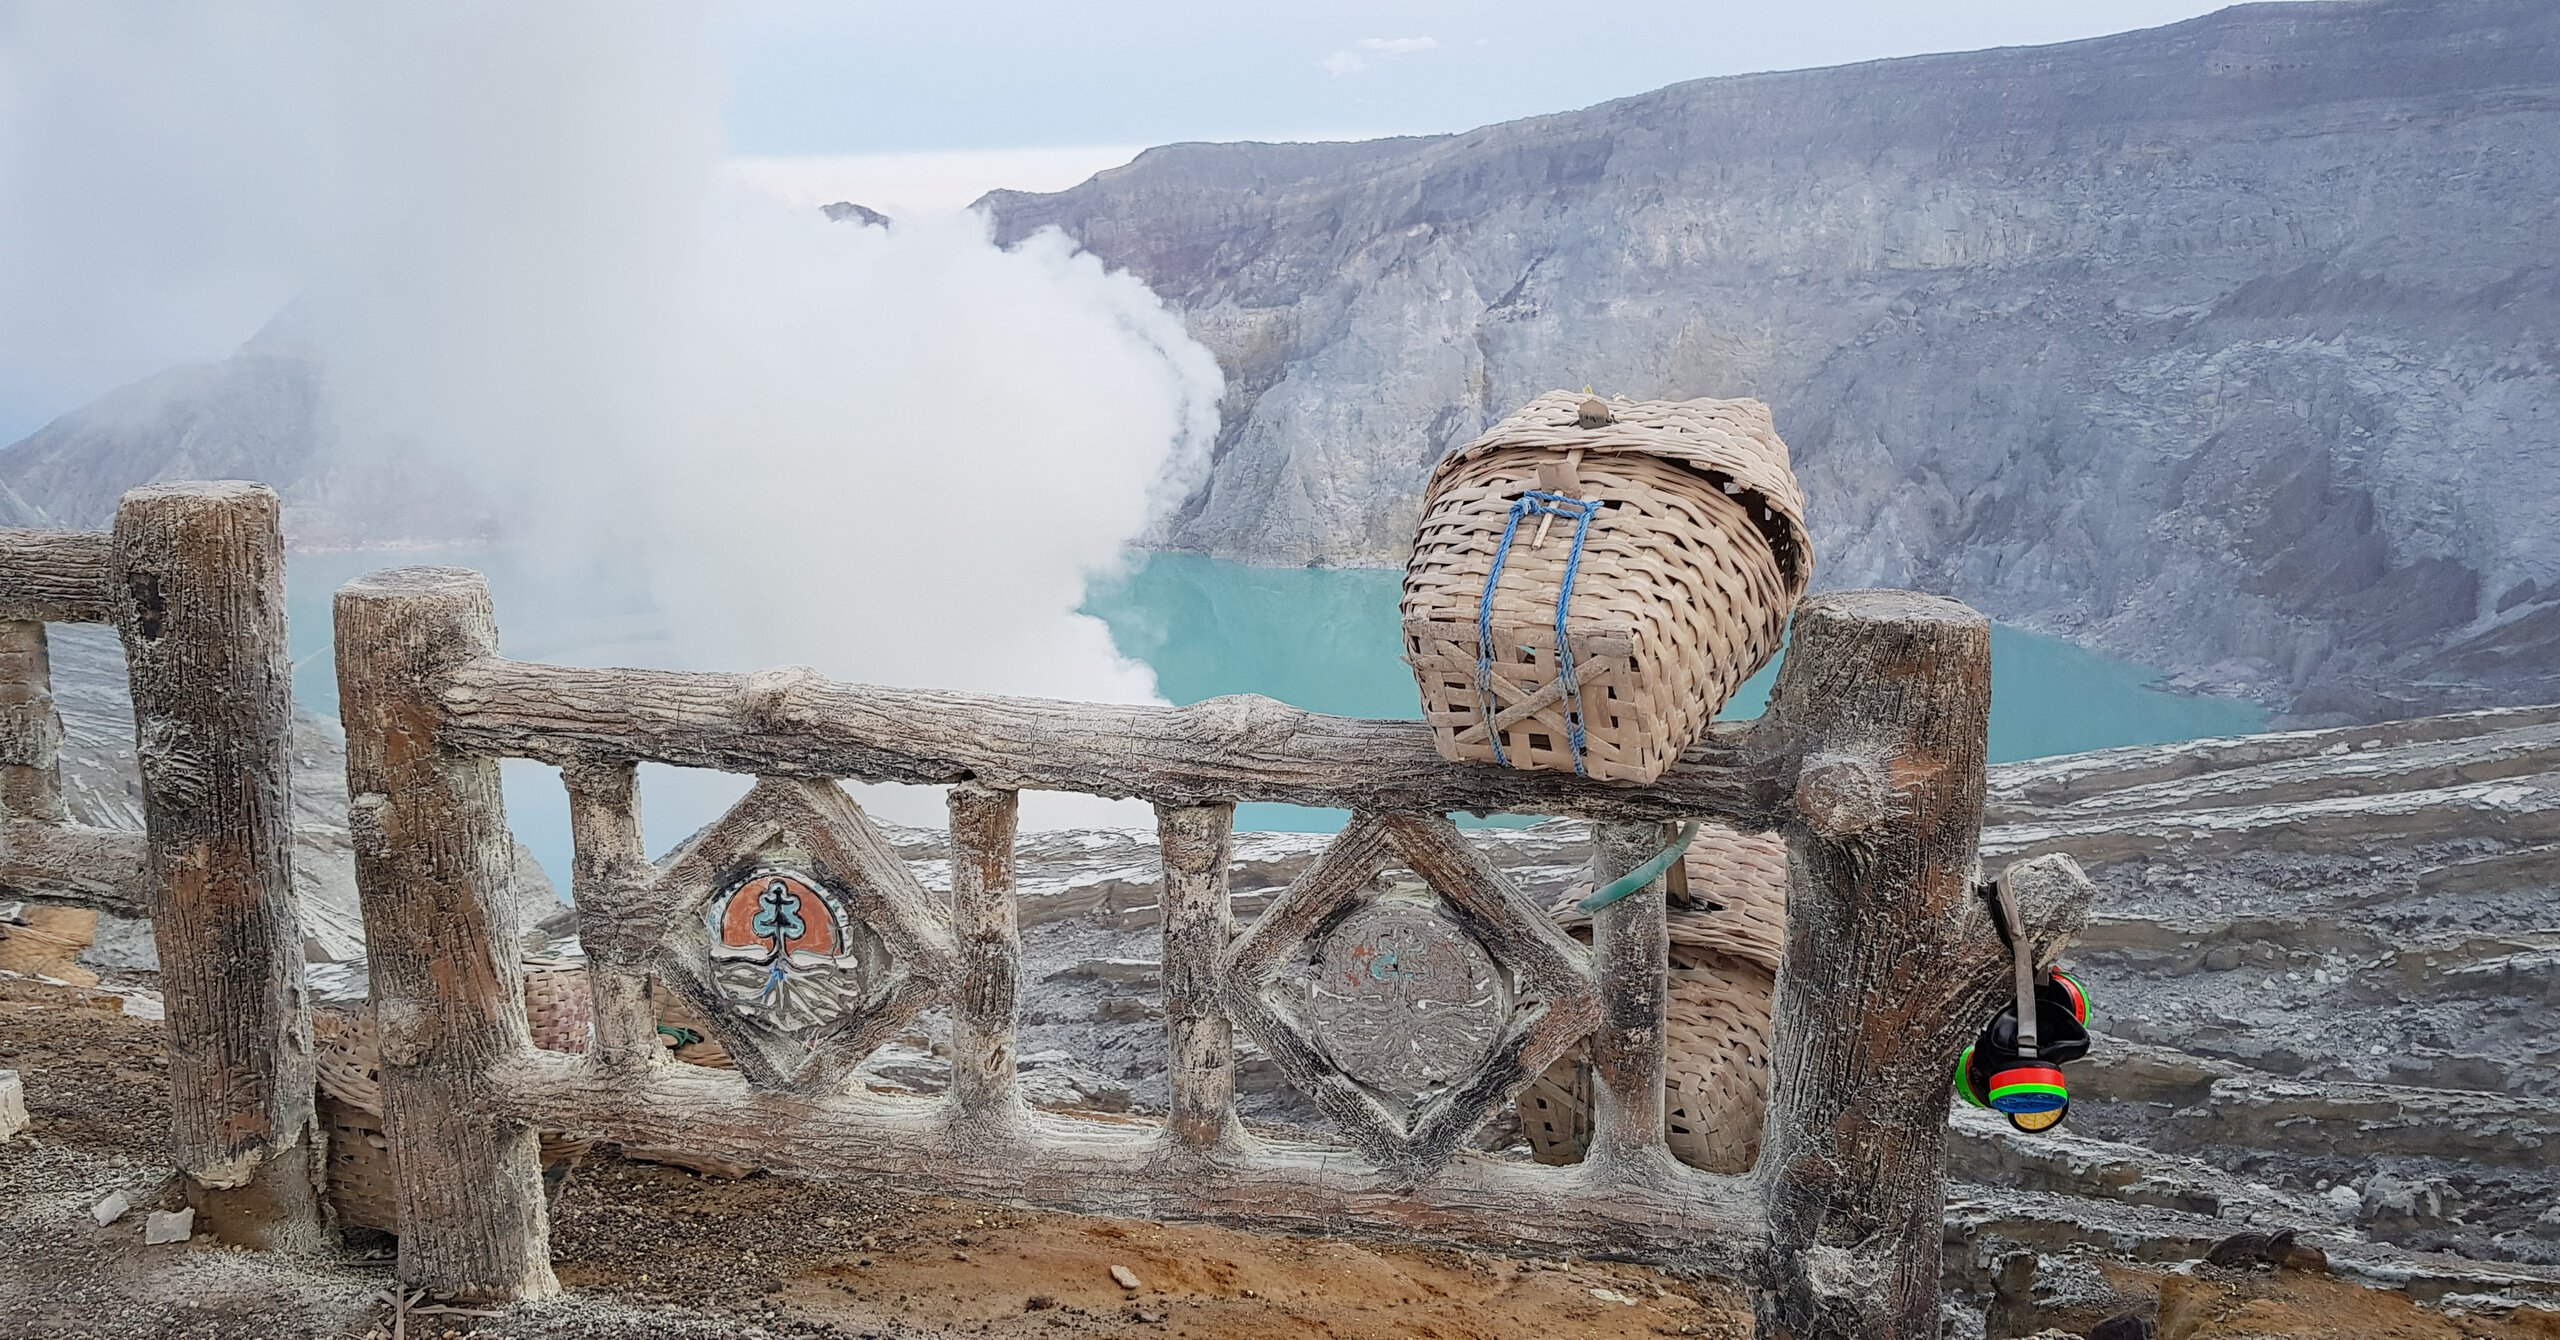 A Sulphur miner basket on the rim of Ijen volcano crater, overlooking the acid crater lake.